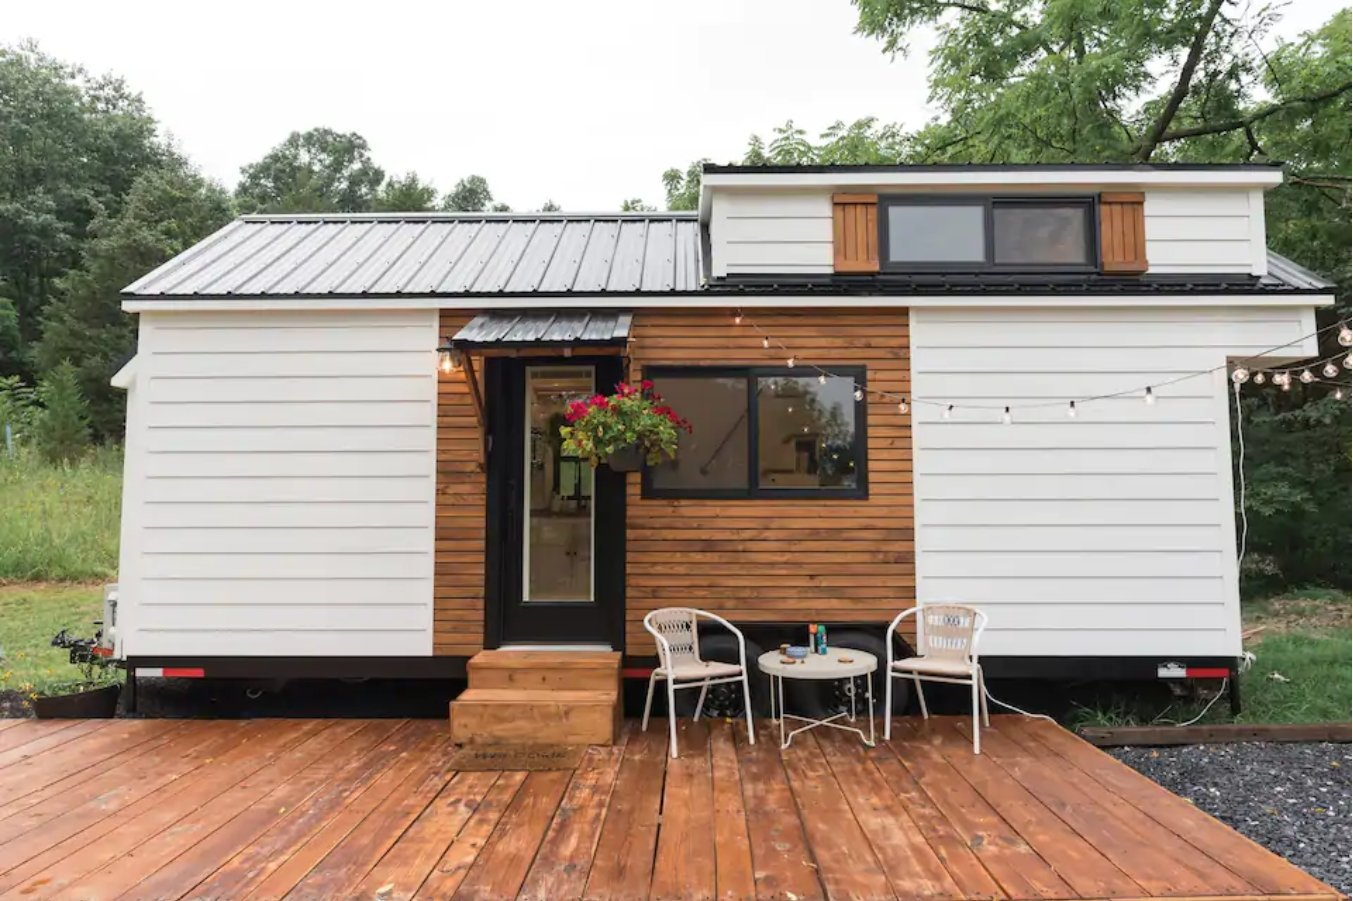 20 Tiny Houses in Pennsylvania You Can Rent on Airbnb in 2021!